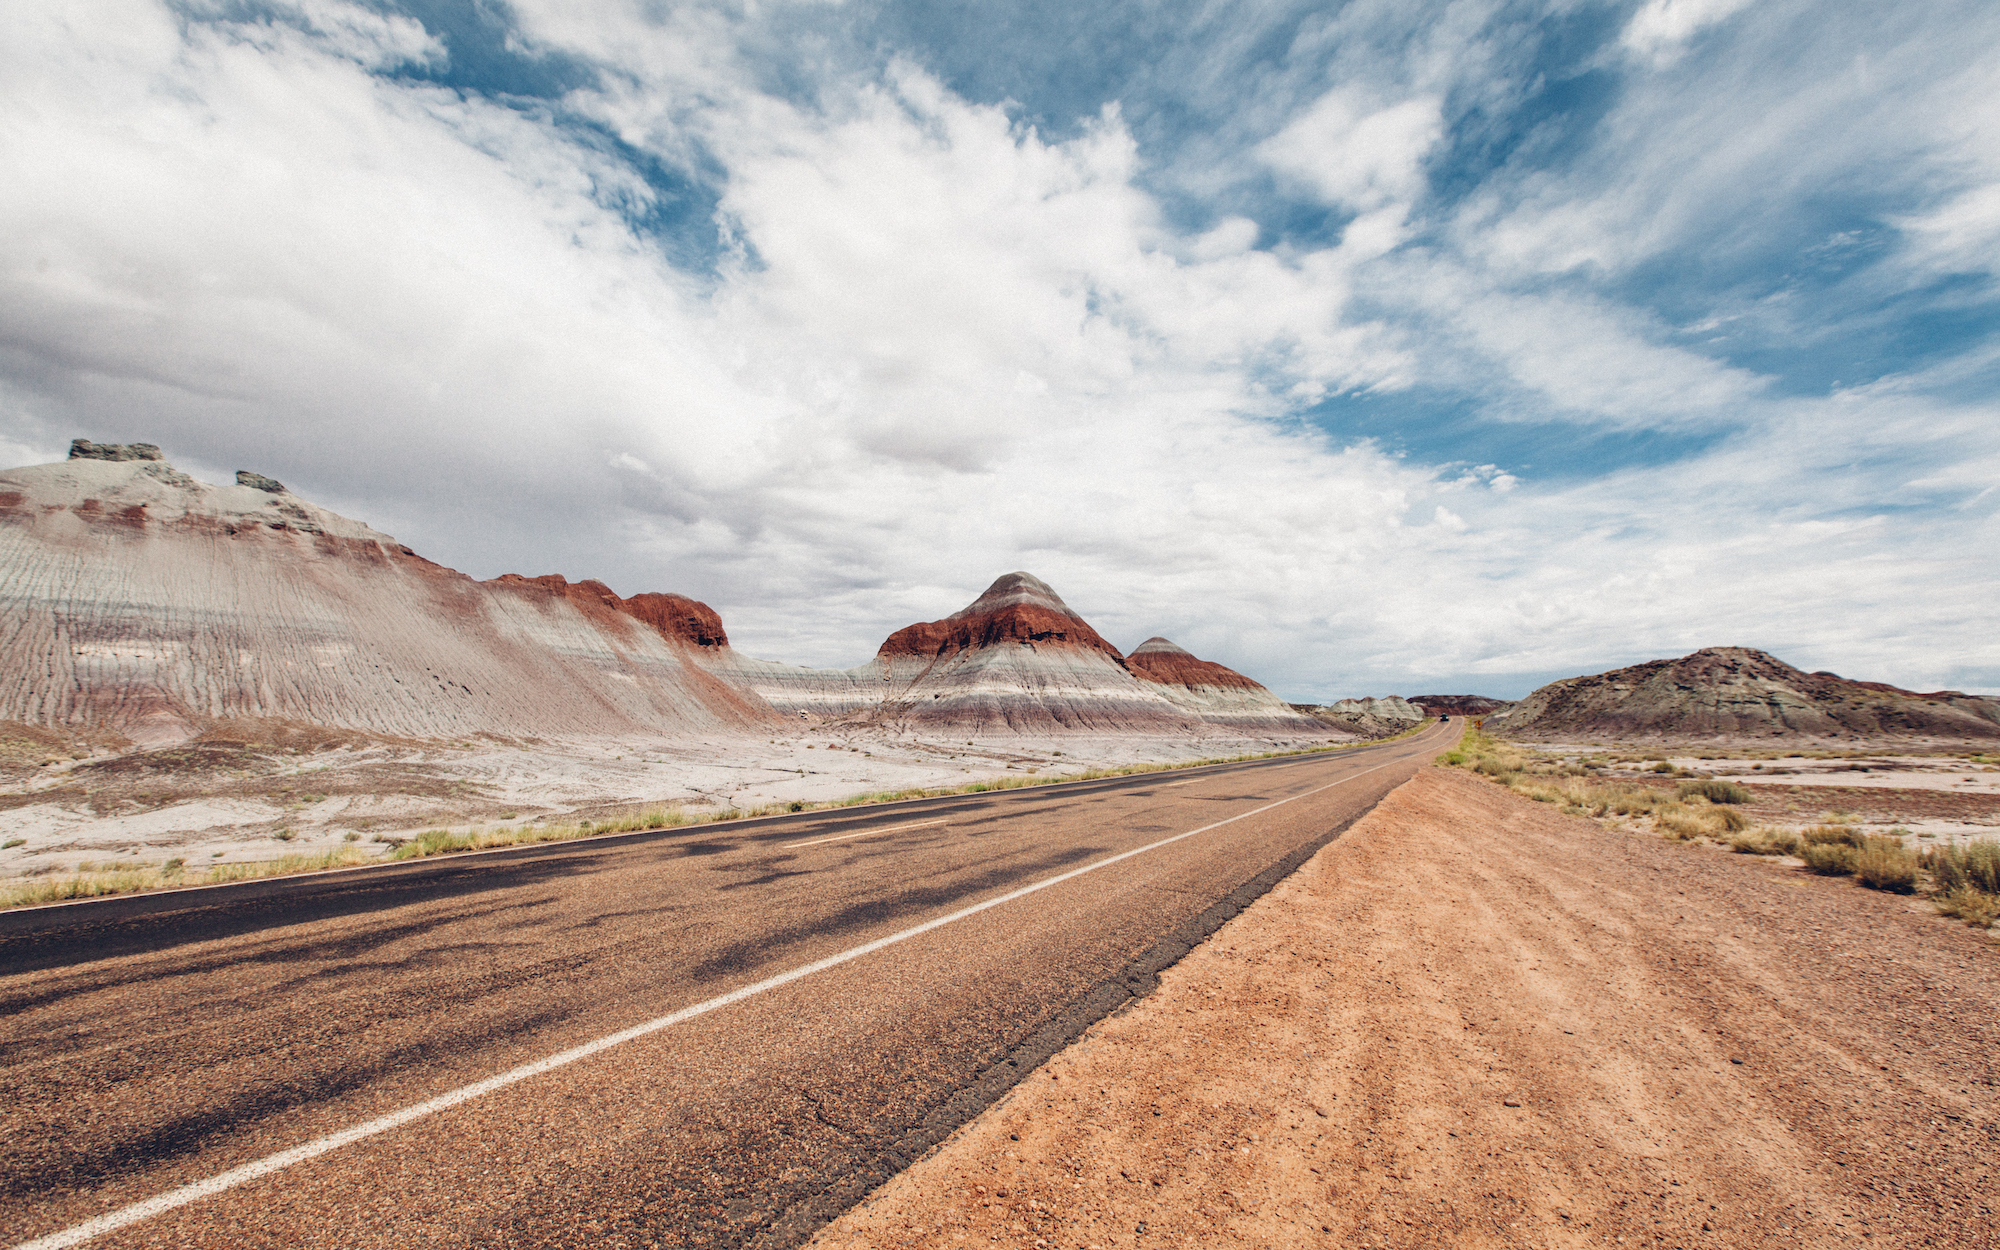 Driving around the Petrified Forest National Park in New Mexico